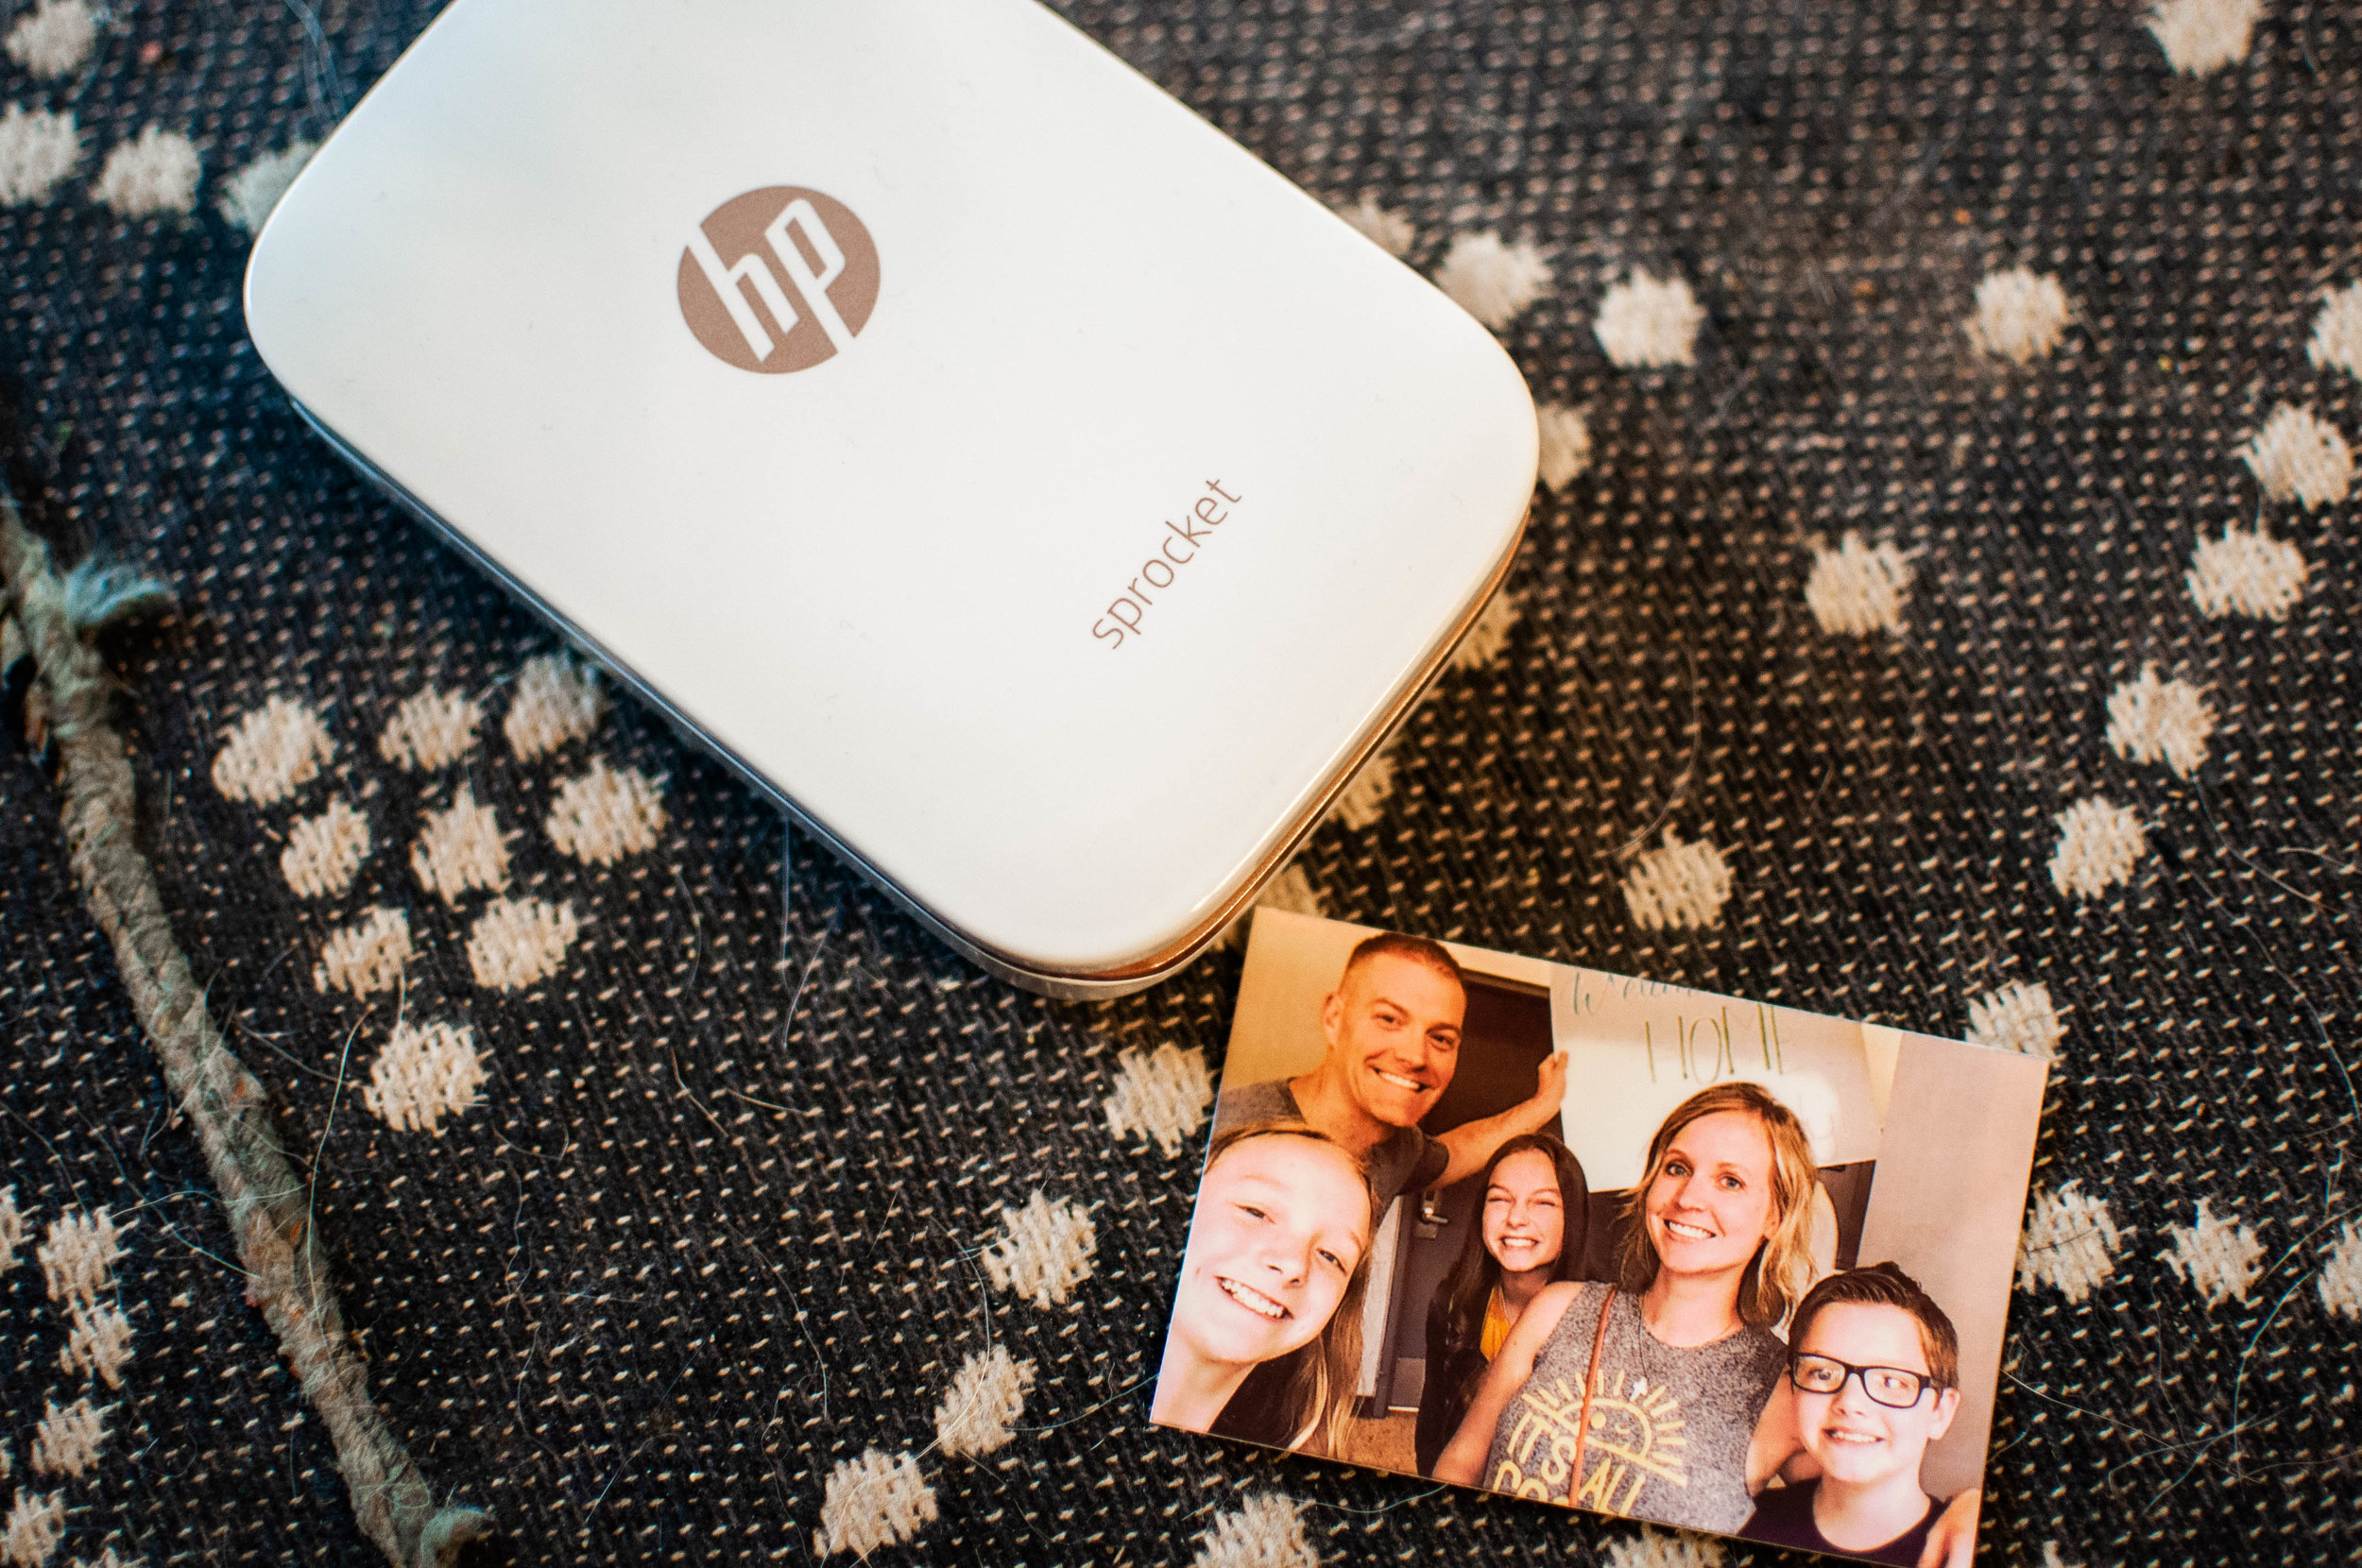 HP Sprocket. These are a few of my favorite things! The Sprocket prints out your phone photos via bluetooth! So fun!! | Pin Cut Sew Studio